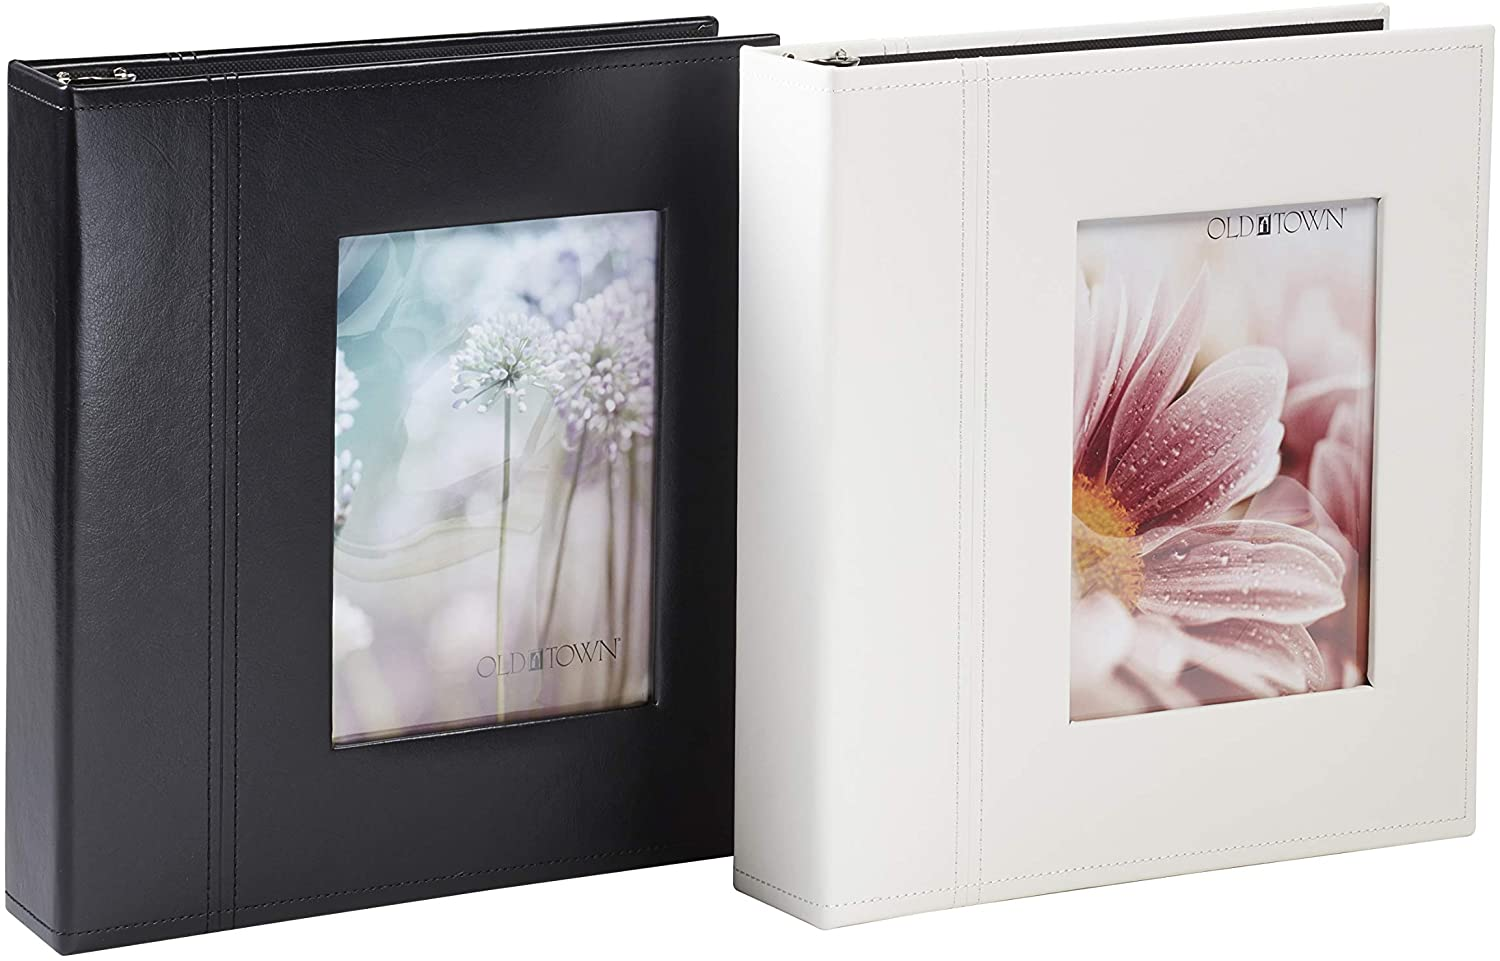 Old Town Magnetic Page Photo Albums, 2-Pack (40 Pages Each) - Black & Cream